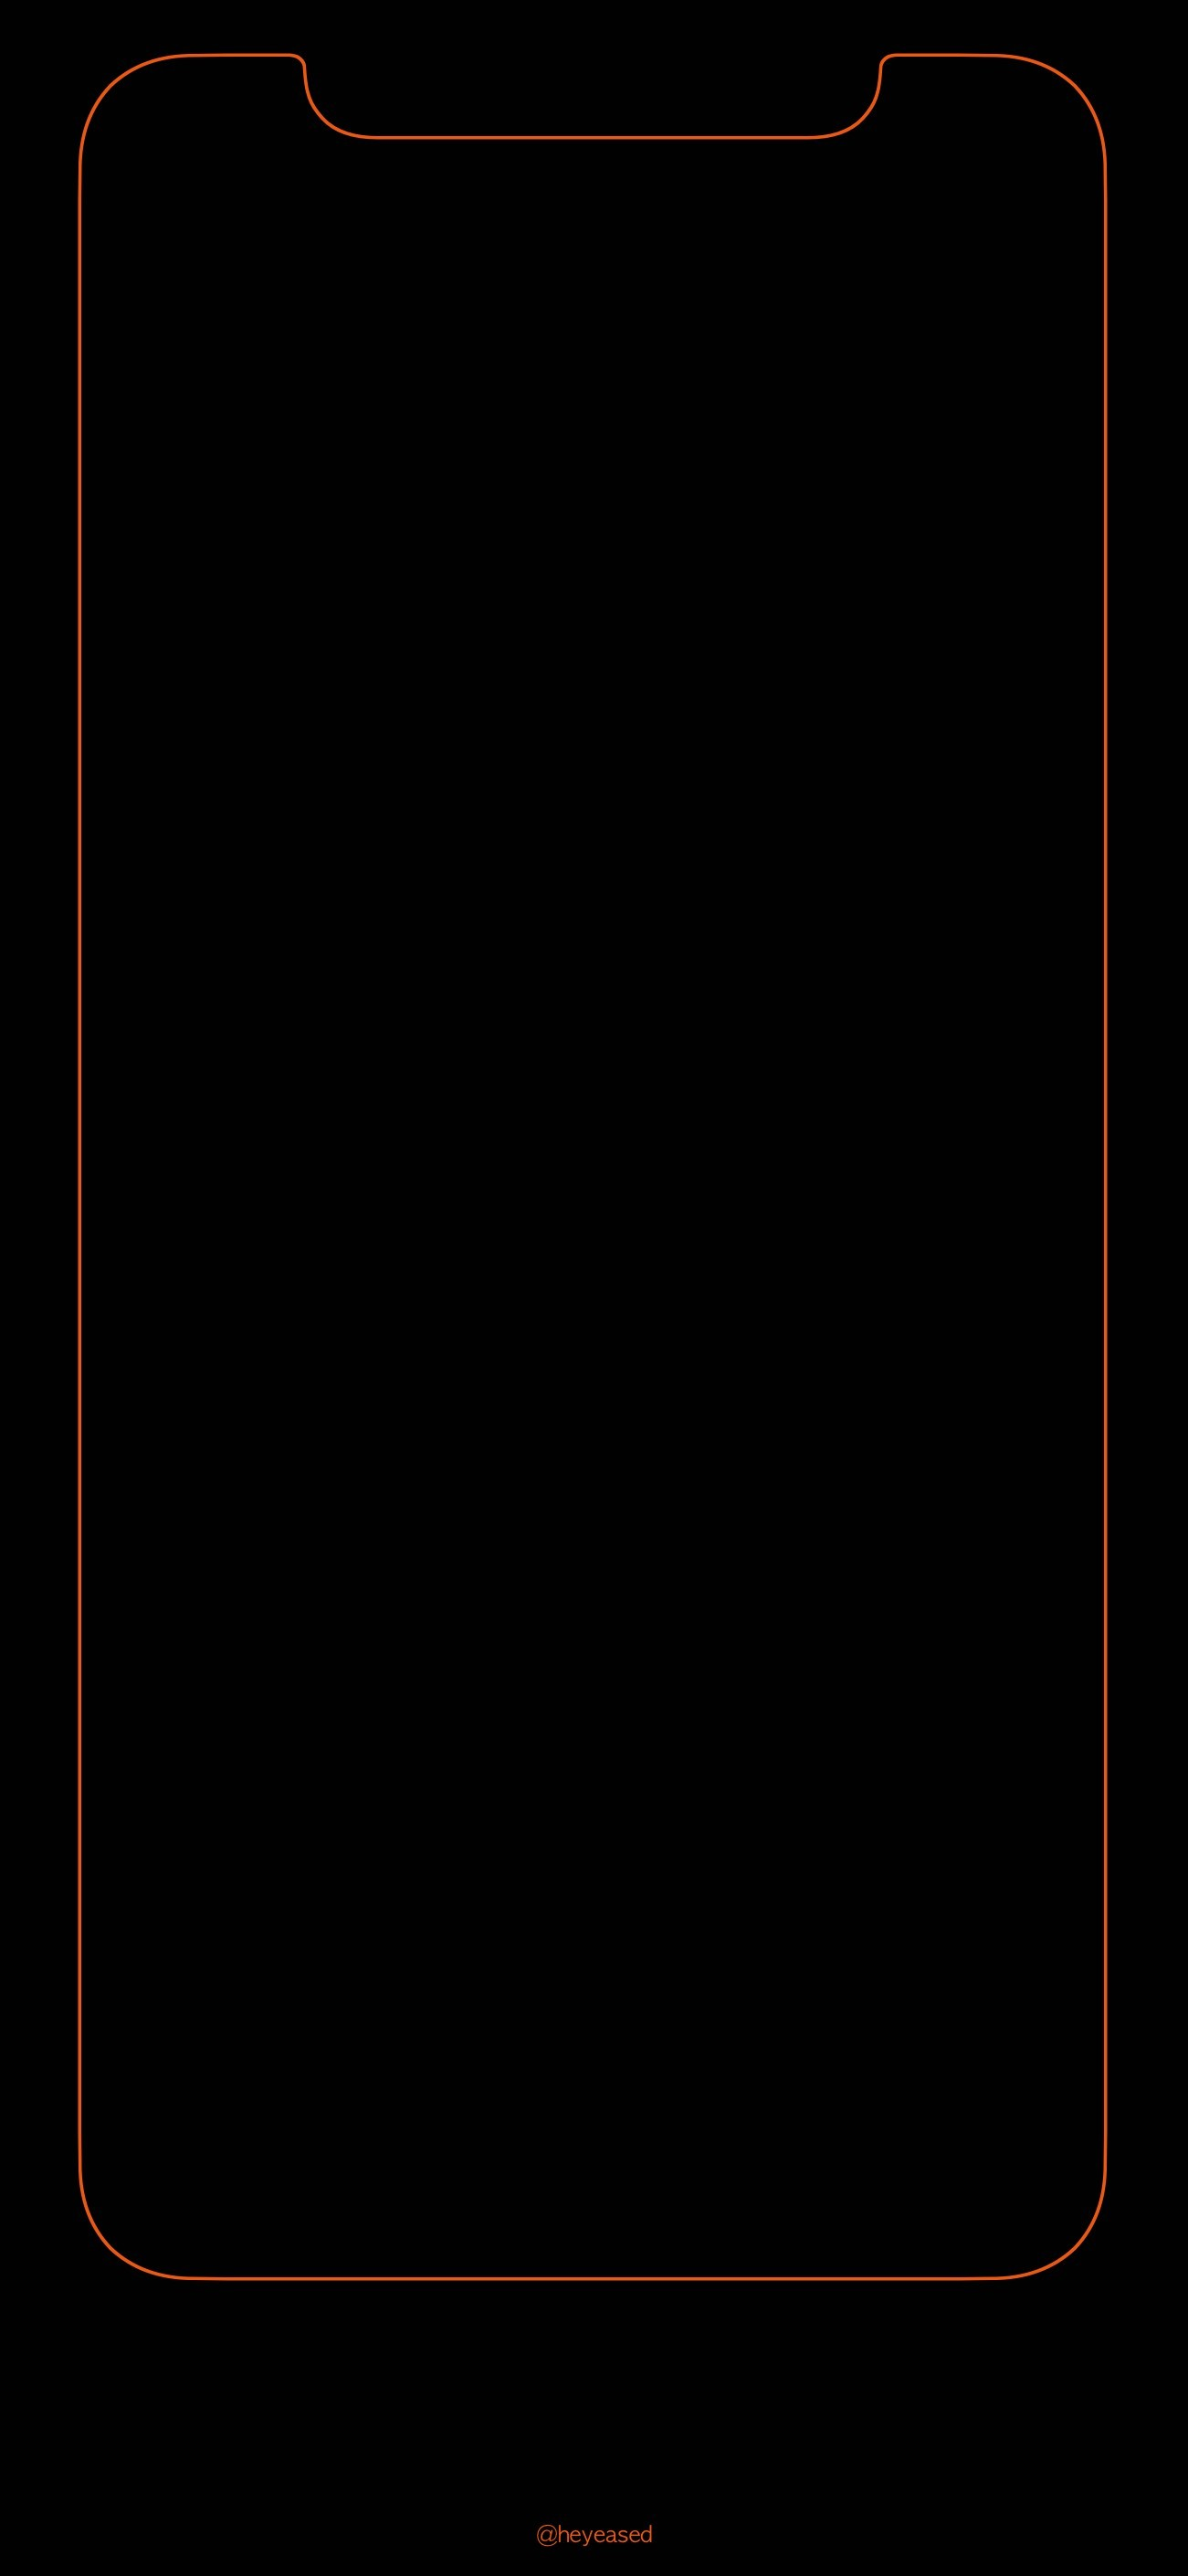 Res: 1301x2820, 8 Bit iPhone Wallpaper Fresh New Blueprint Wallpapers for iPhone X and  iPhone 8 Apple79pro Of